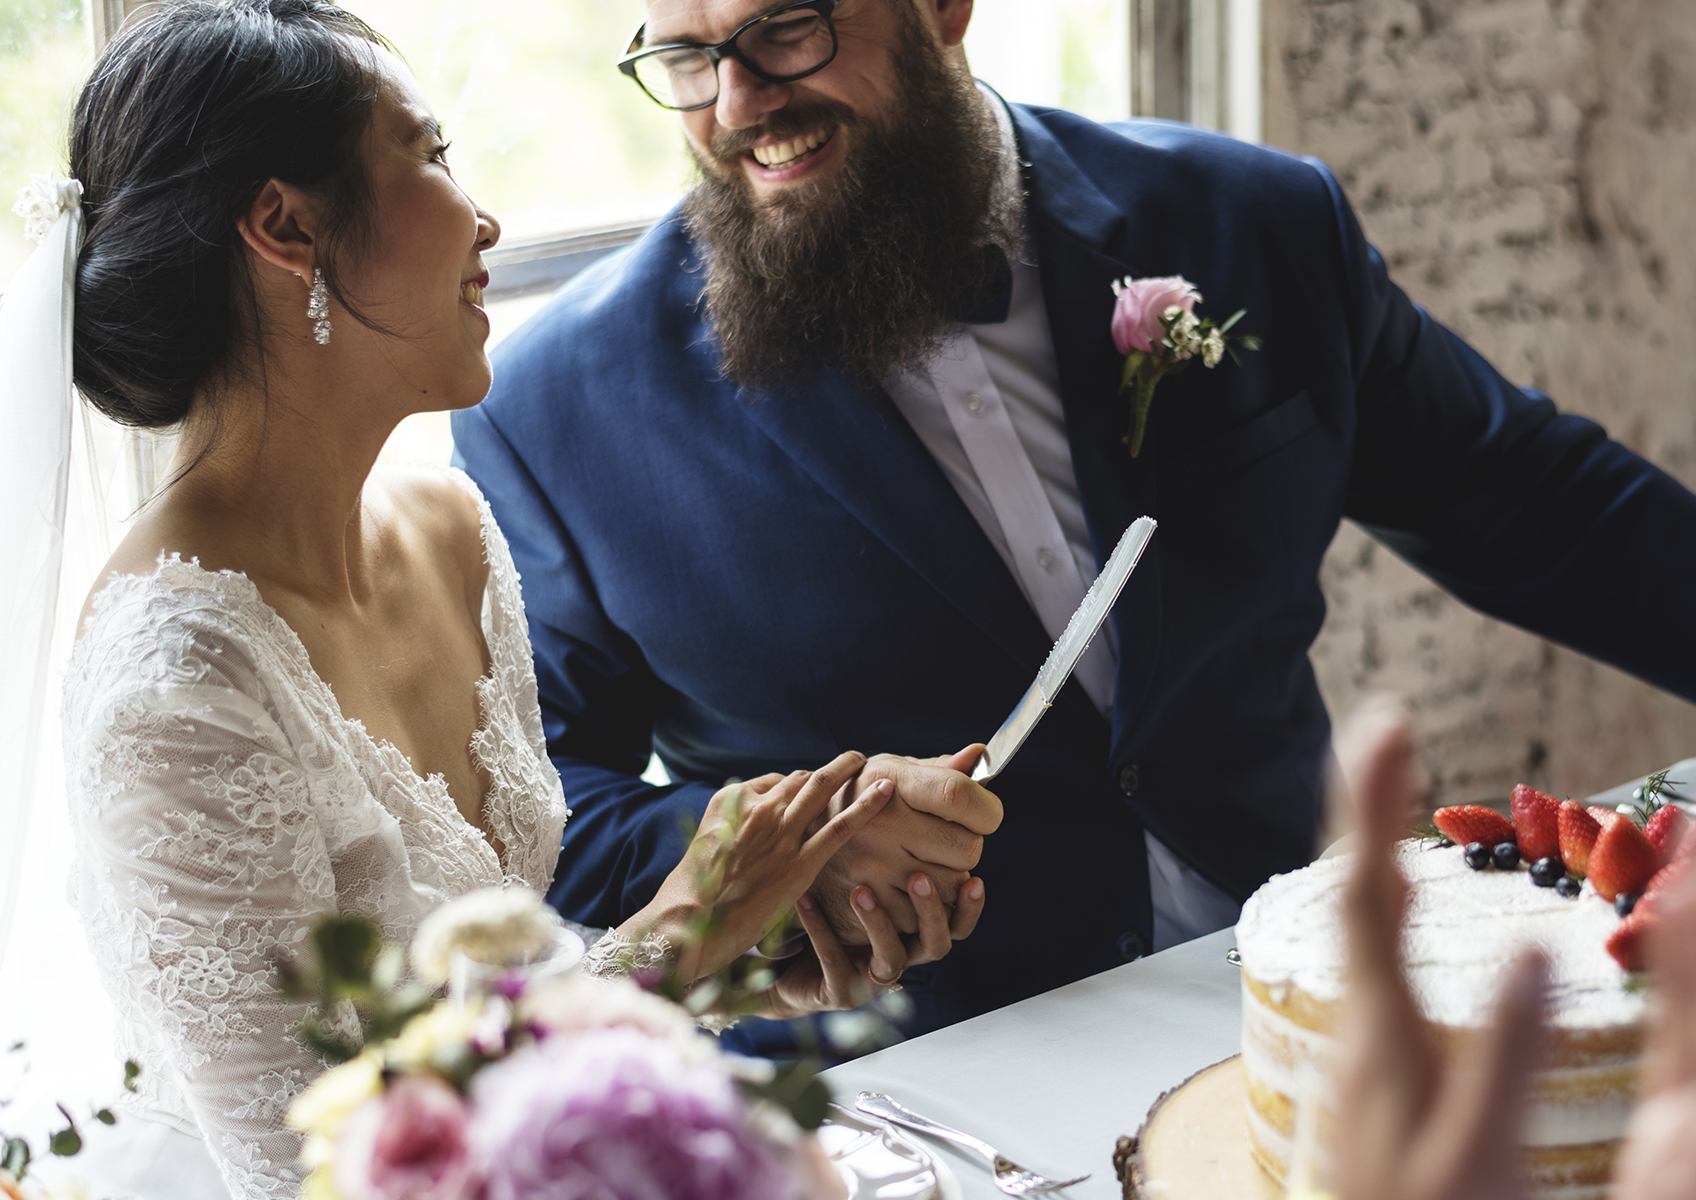 2021 is full of opportunity for wedding pros